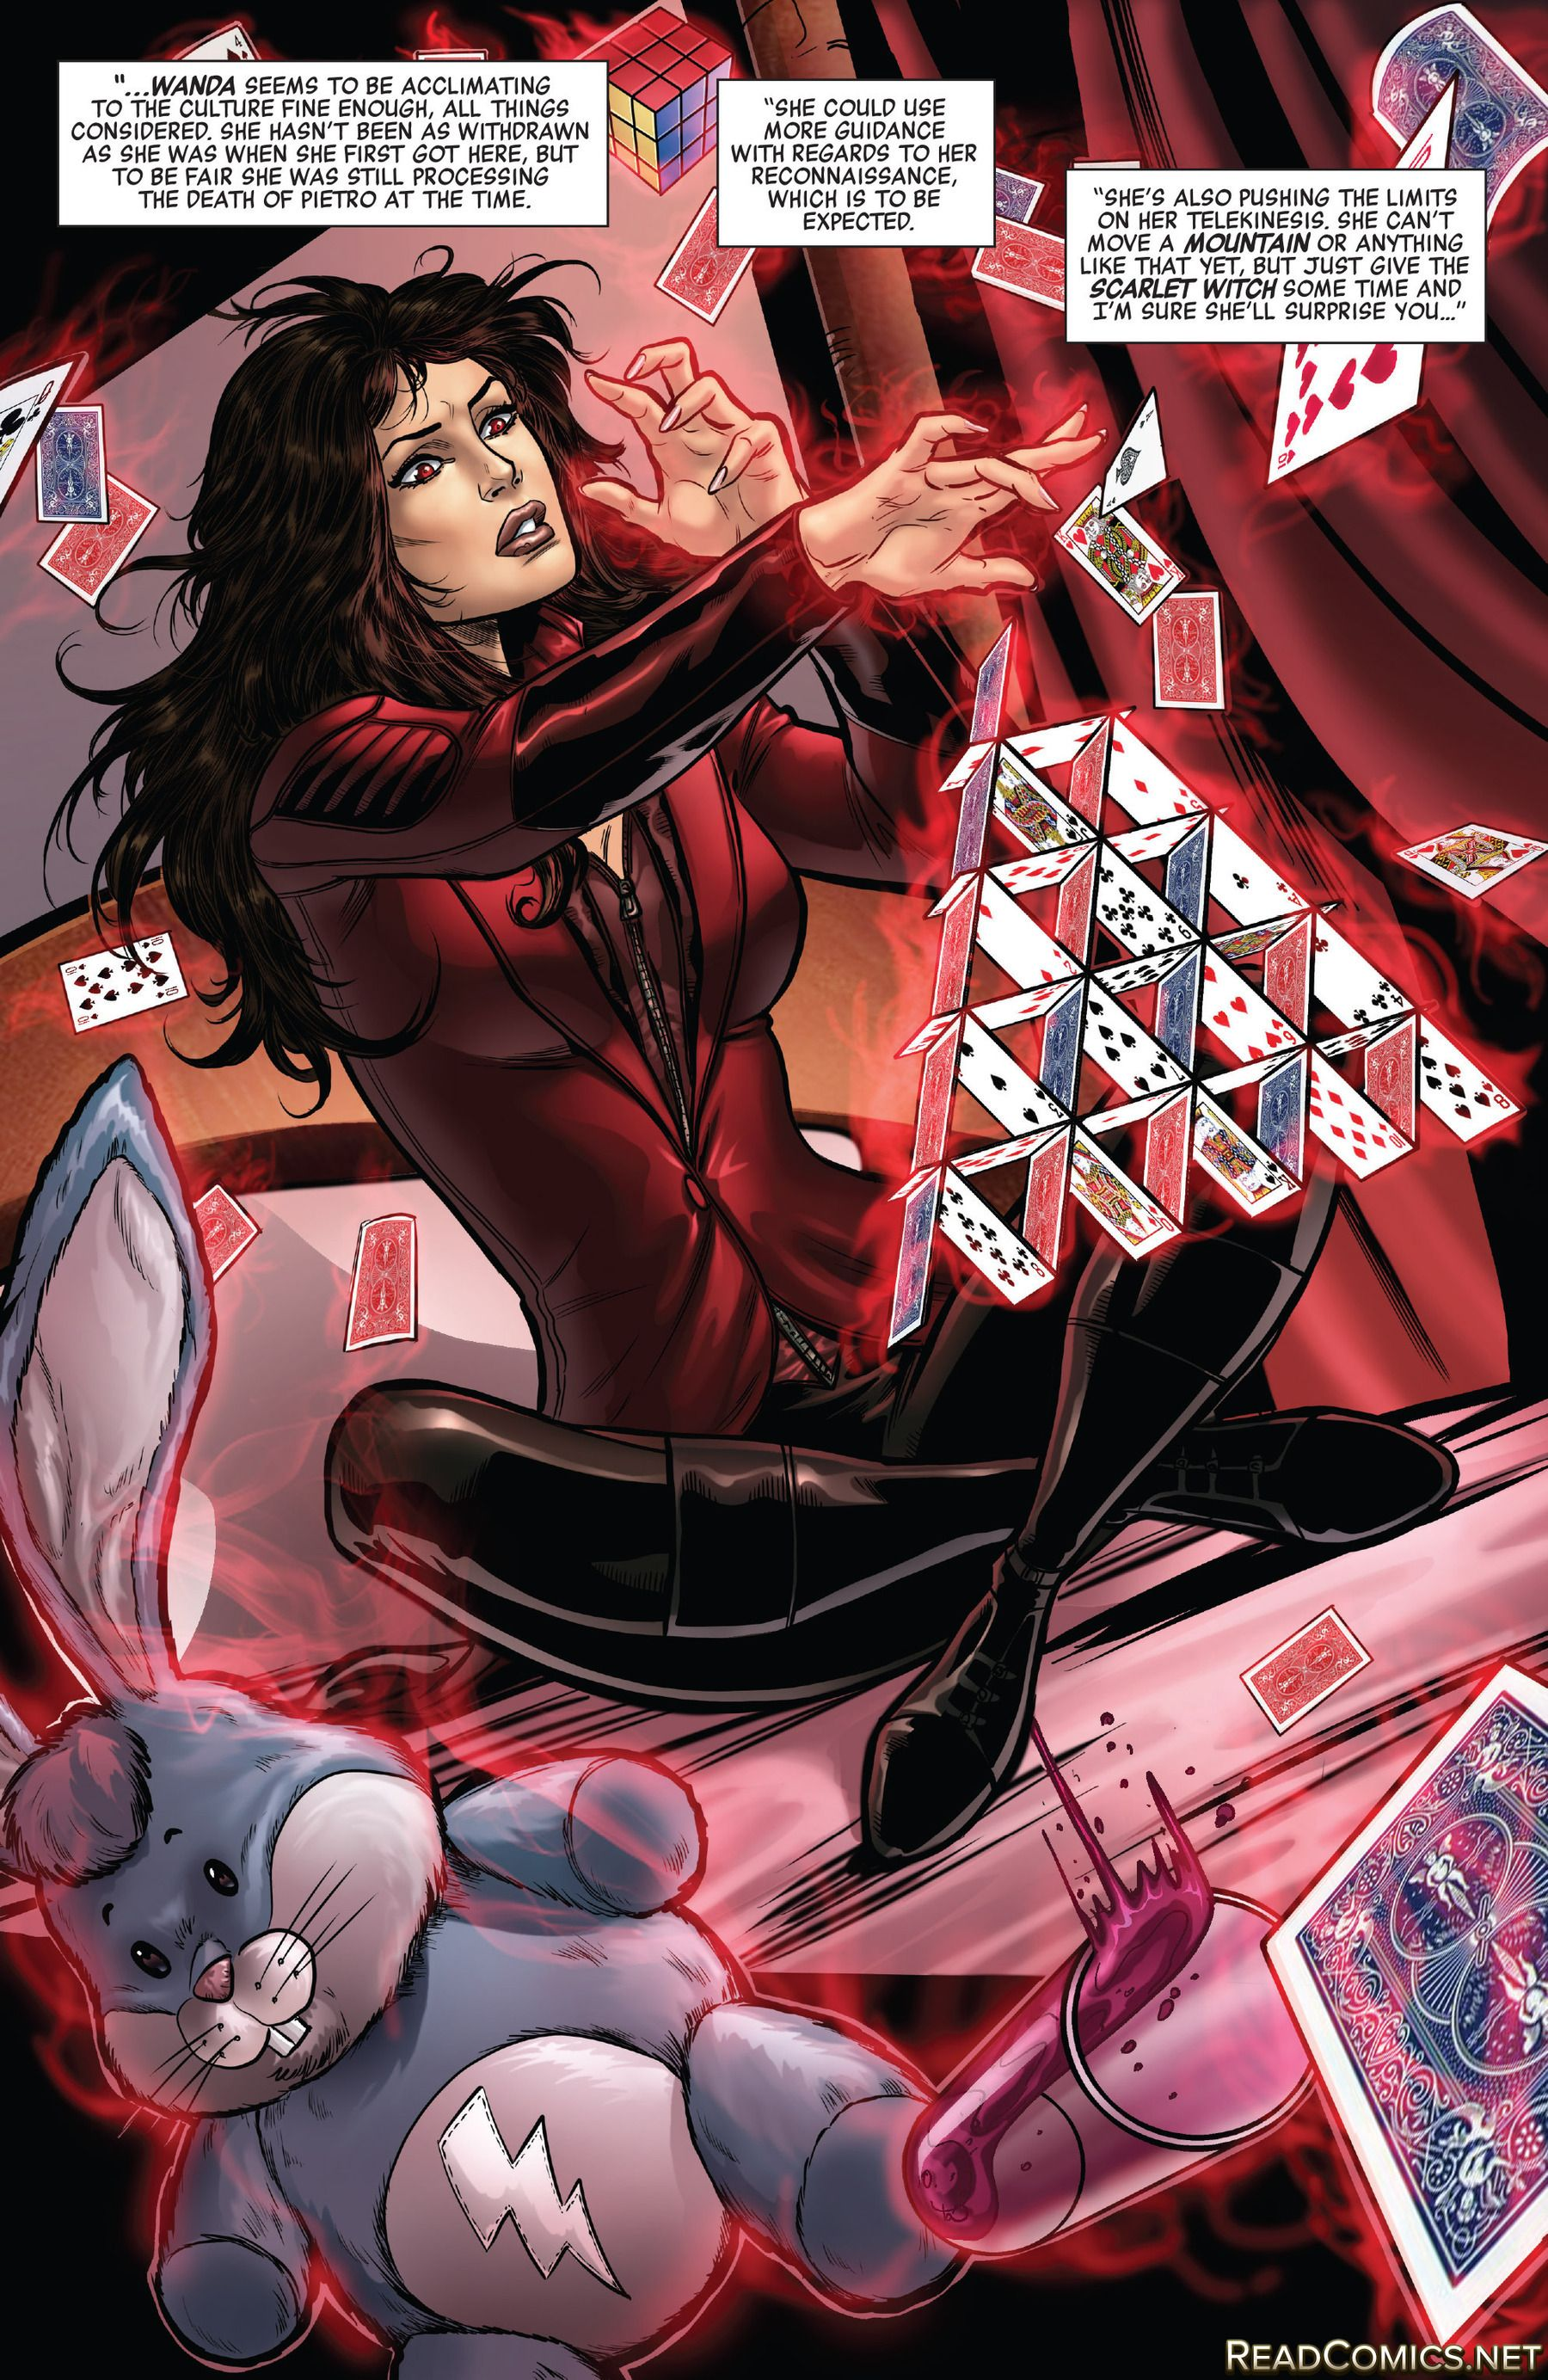 Scarlet witch the bunny with the lightning bolt on it geeknerd scarlet witch the bunny with the lightning bolt on it buycottarizona Image collections